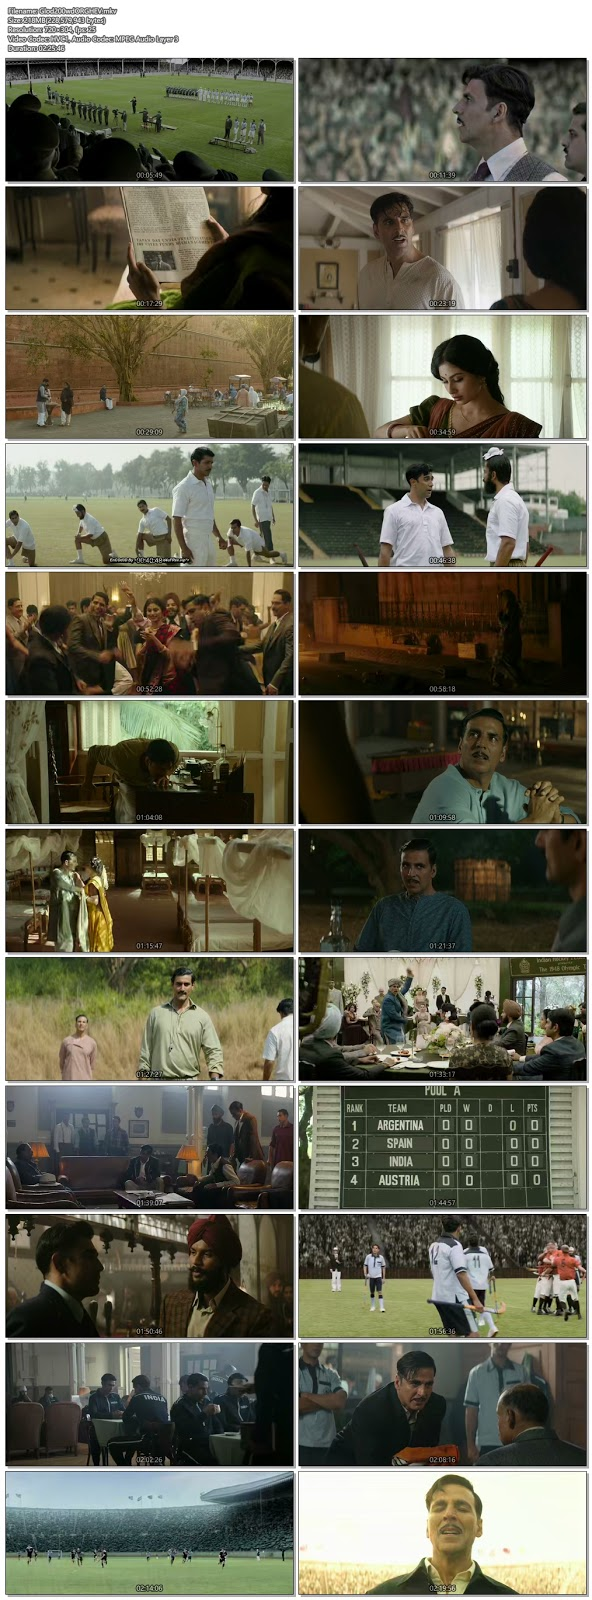 Gold 2018 Hindi Movie HDRip 480p 200Mb HEVC x265 world4ufree.fun , hindi movie Gold 2018 hdrip 720p bollywood movie Gold 2018 720p LATEST MOVie Gold 2018 720p DVDRip NEW MOVIE Gold 2018 720p WEBHD 700mb free download or watch online at world4ufree.fun